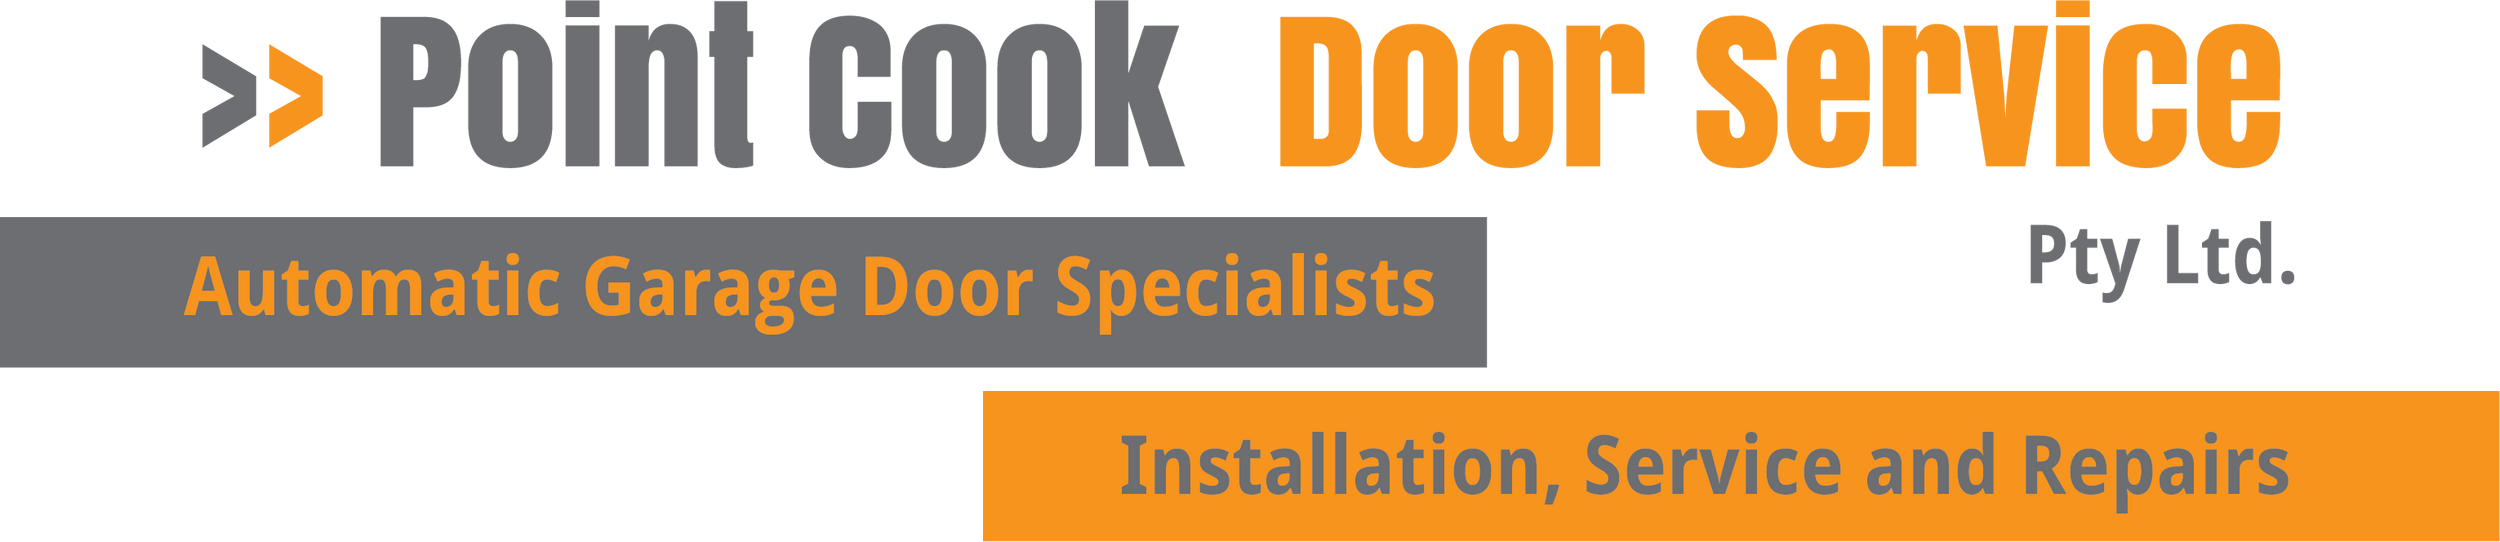 Point Cook Door Service Garage Door Repair Best In The